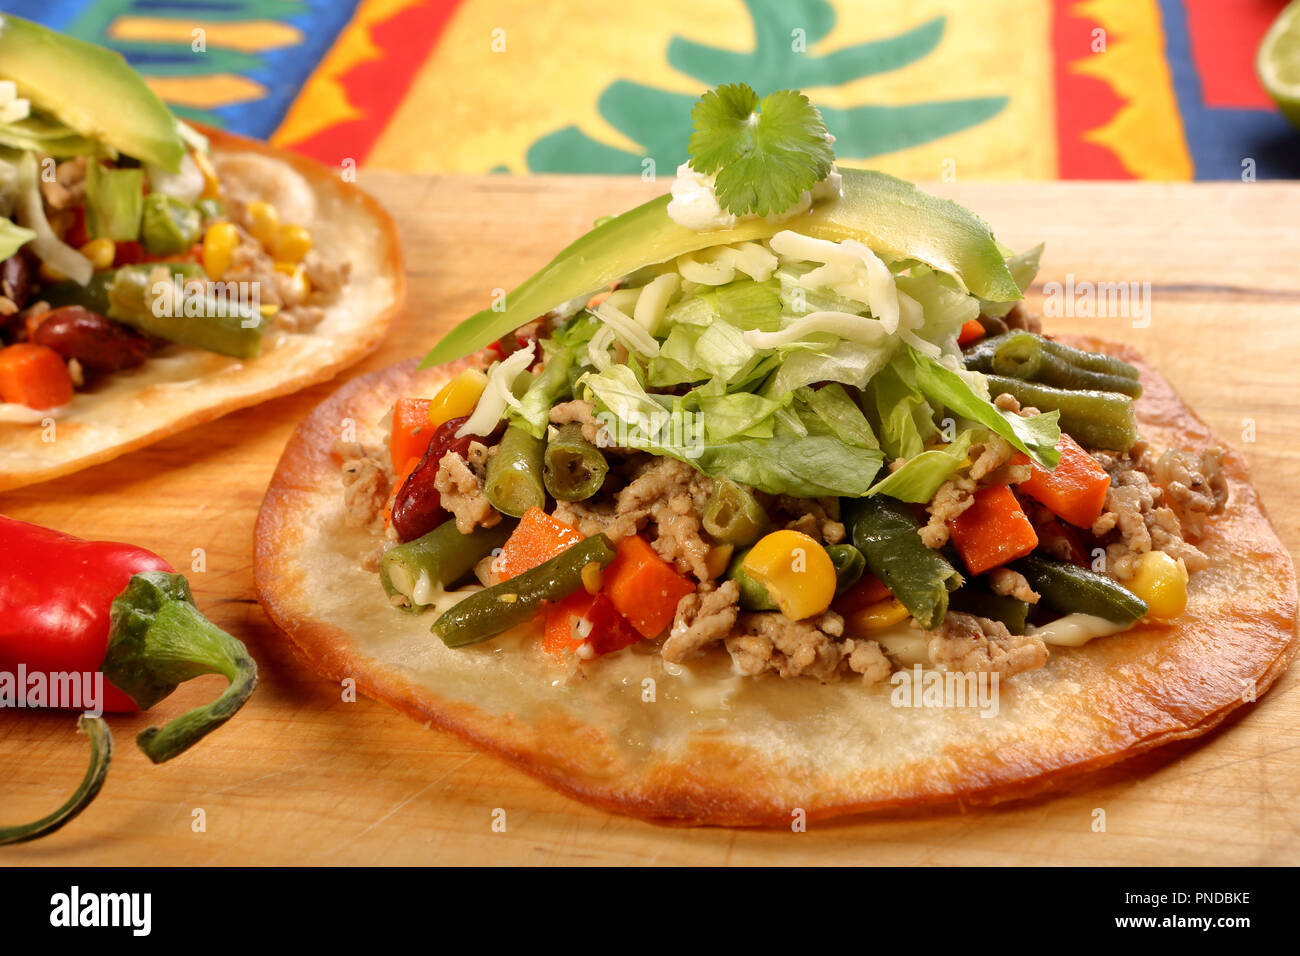 Crunchy Beef Tostada Stack Typical Mexican Food Made With Crispy Fried Corn Tortillas With Guacamole Cheese Sour Cream And Salsa Stock Photo Alamy